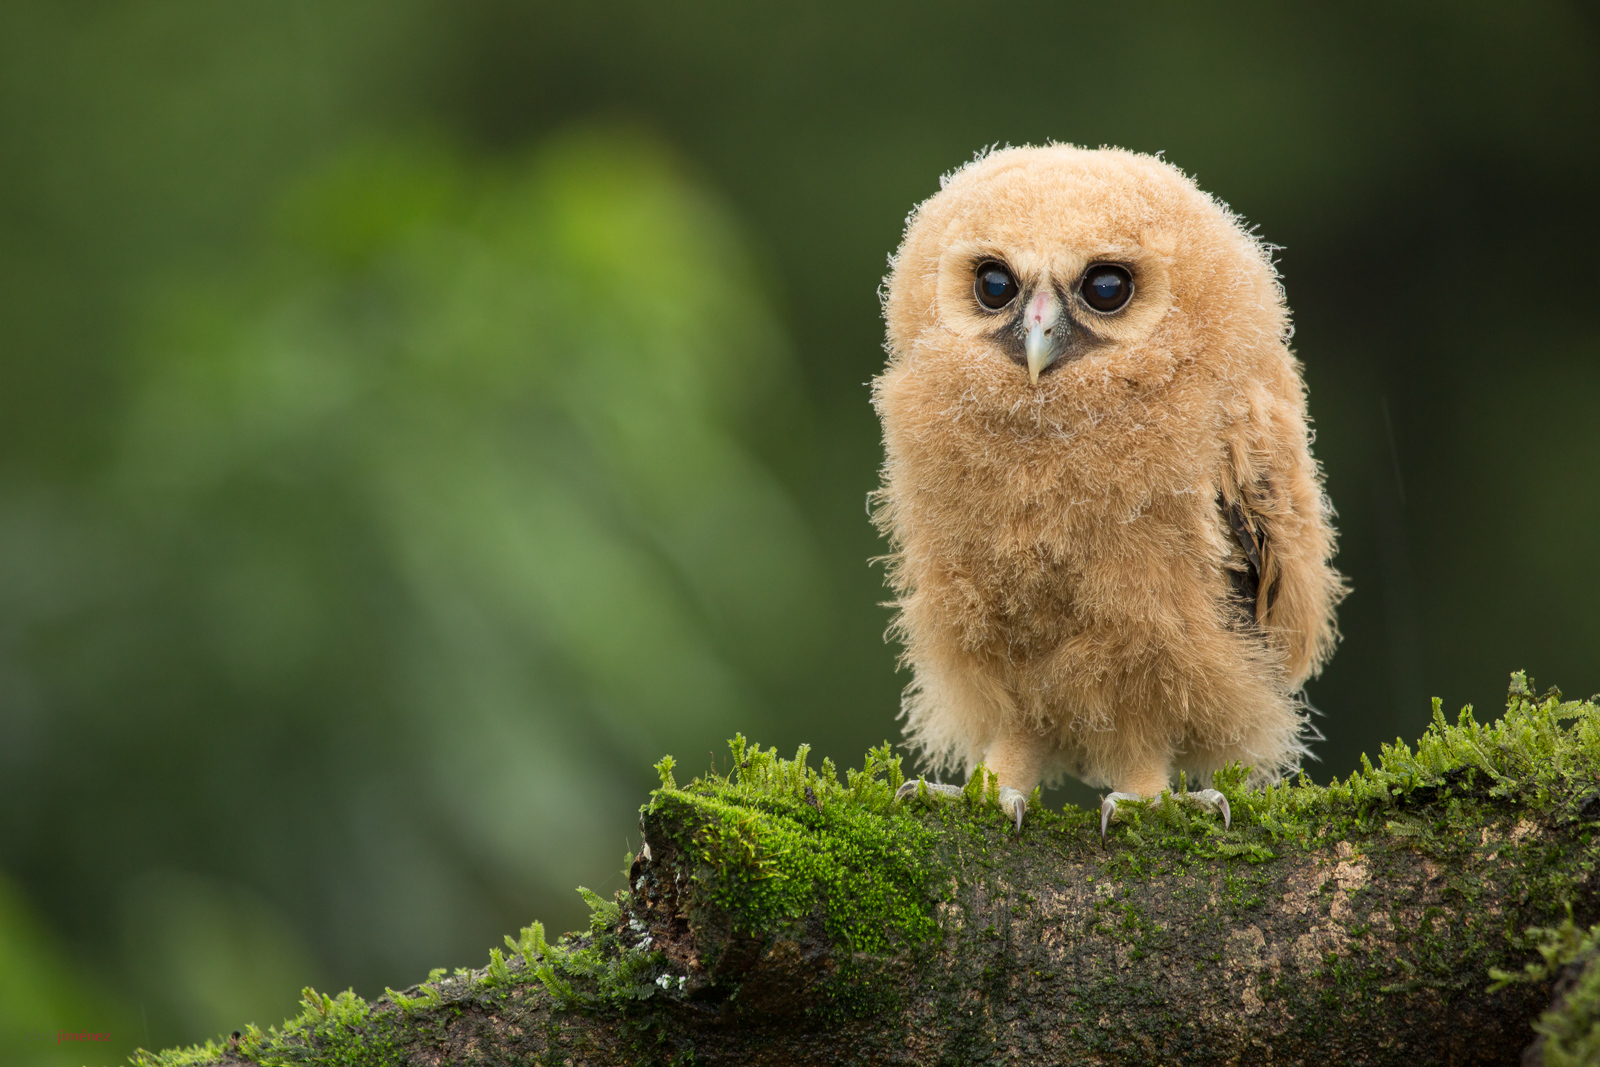 Mottled Owl (Ciccaba virgata) juvenile perched on a mossy branch at the highlands of Costa Rica